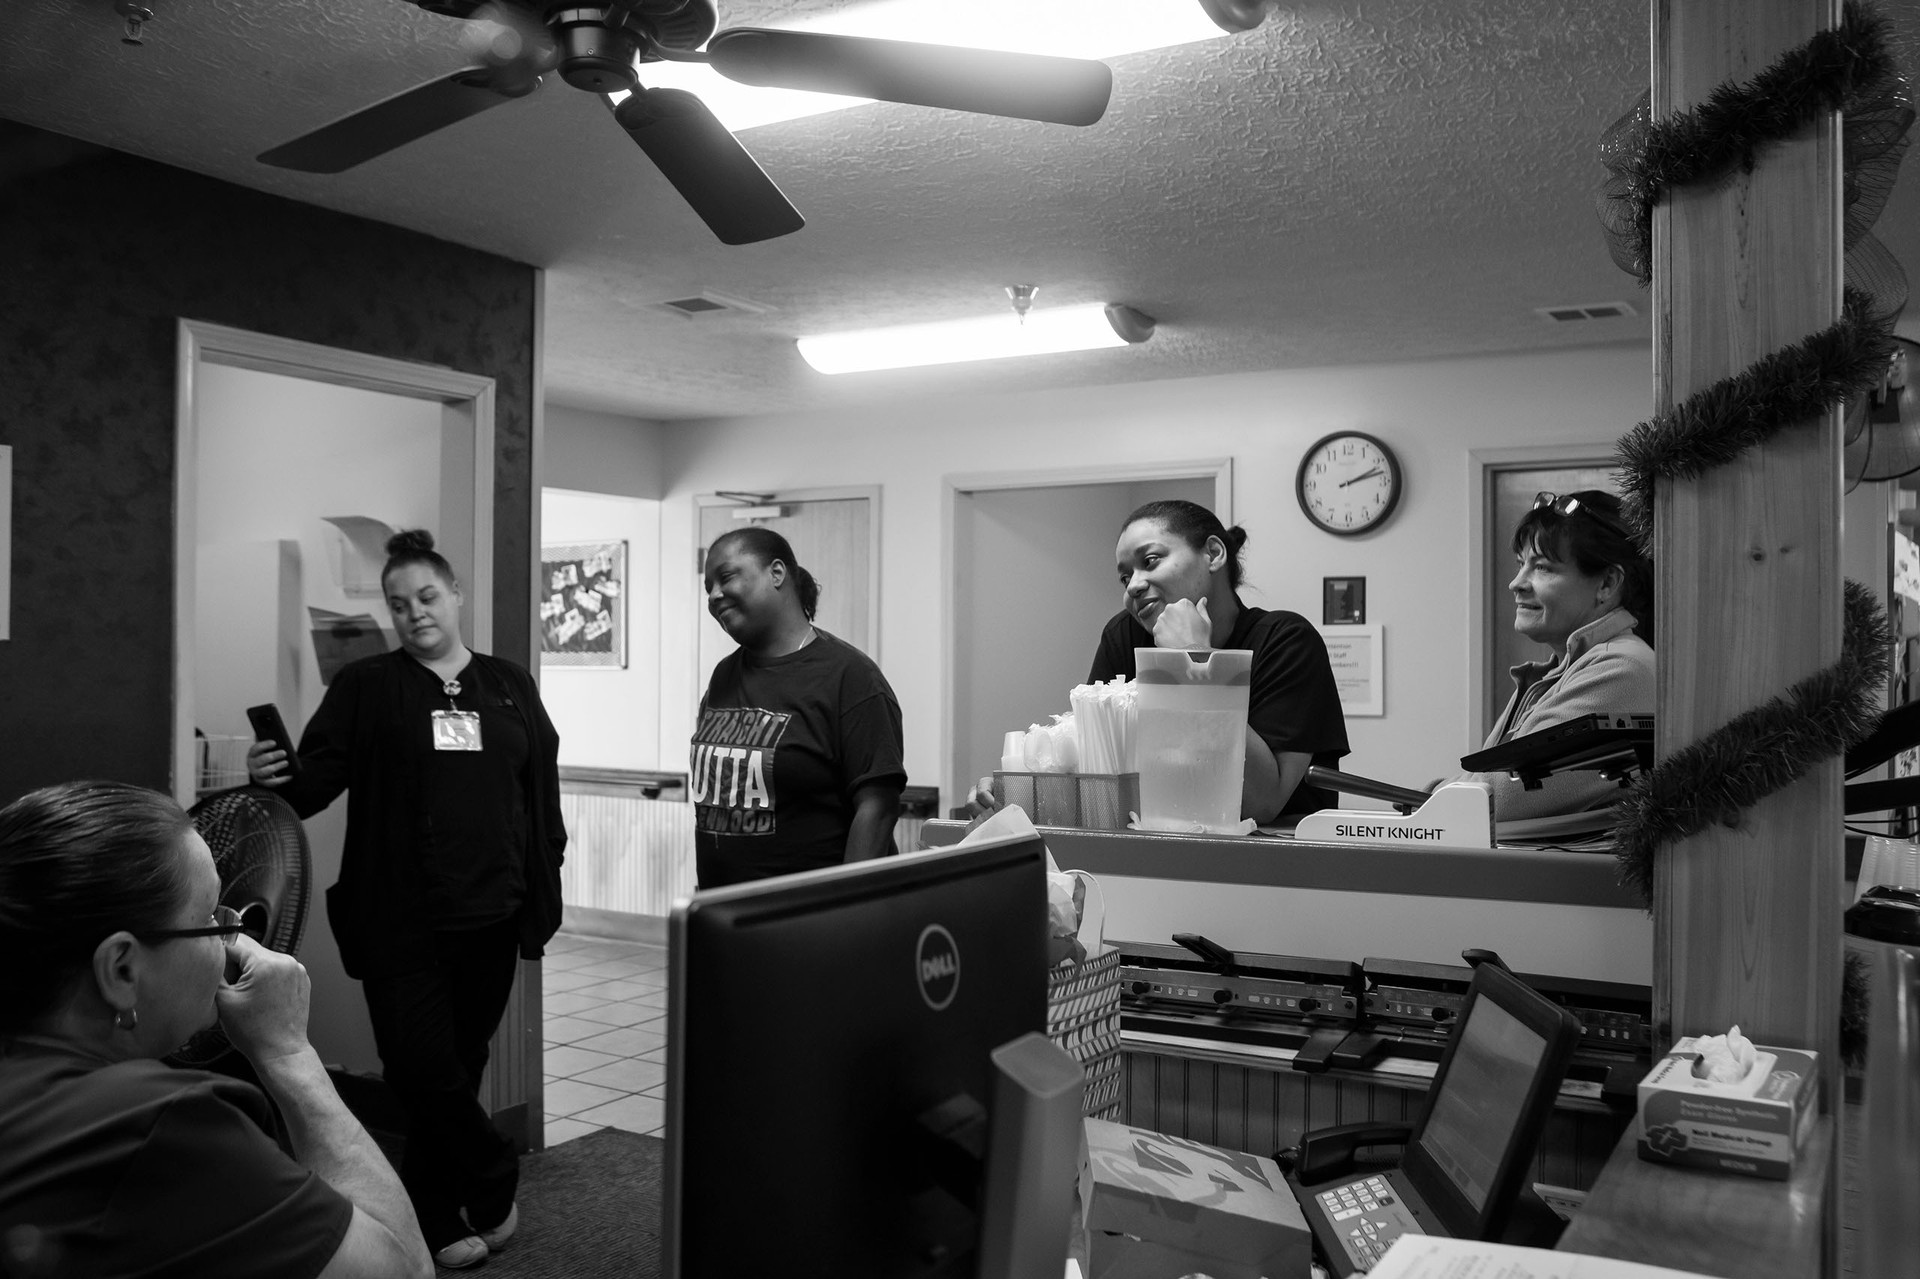 Kremer chats with her coworkers about their annual Christmas party and gift exchange before clocking out of her shift at work.